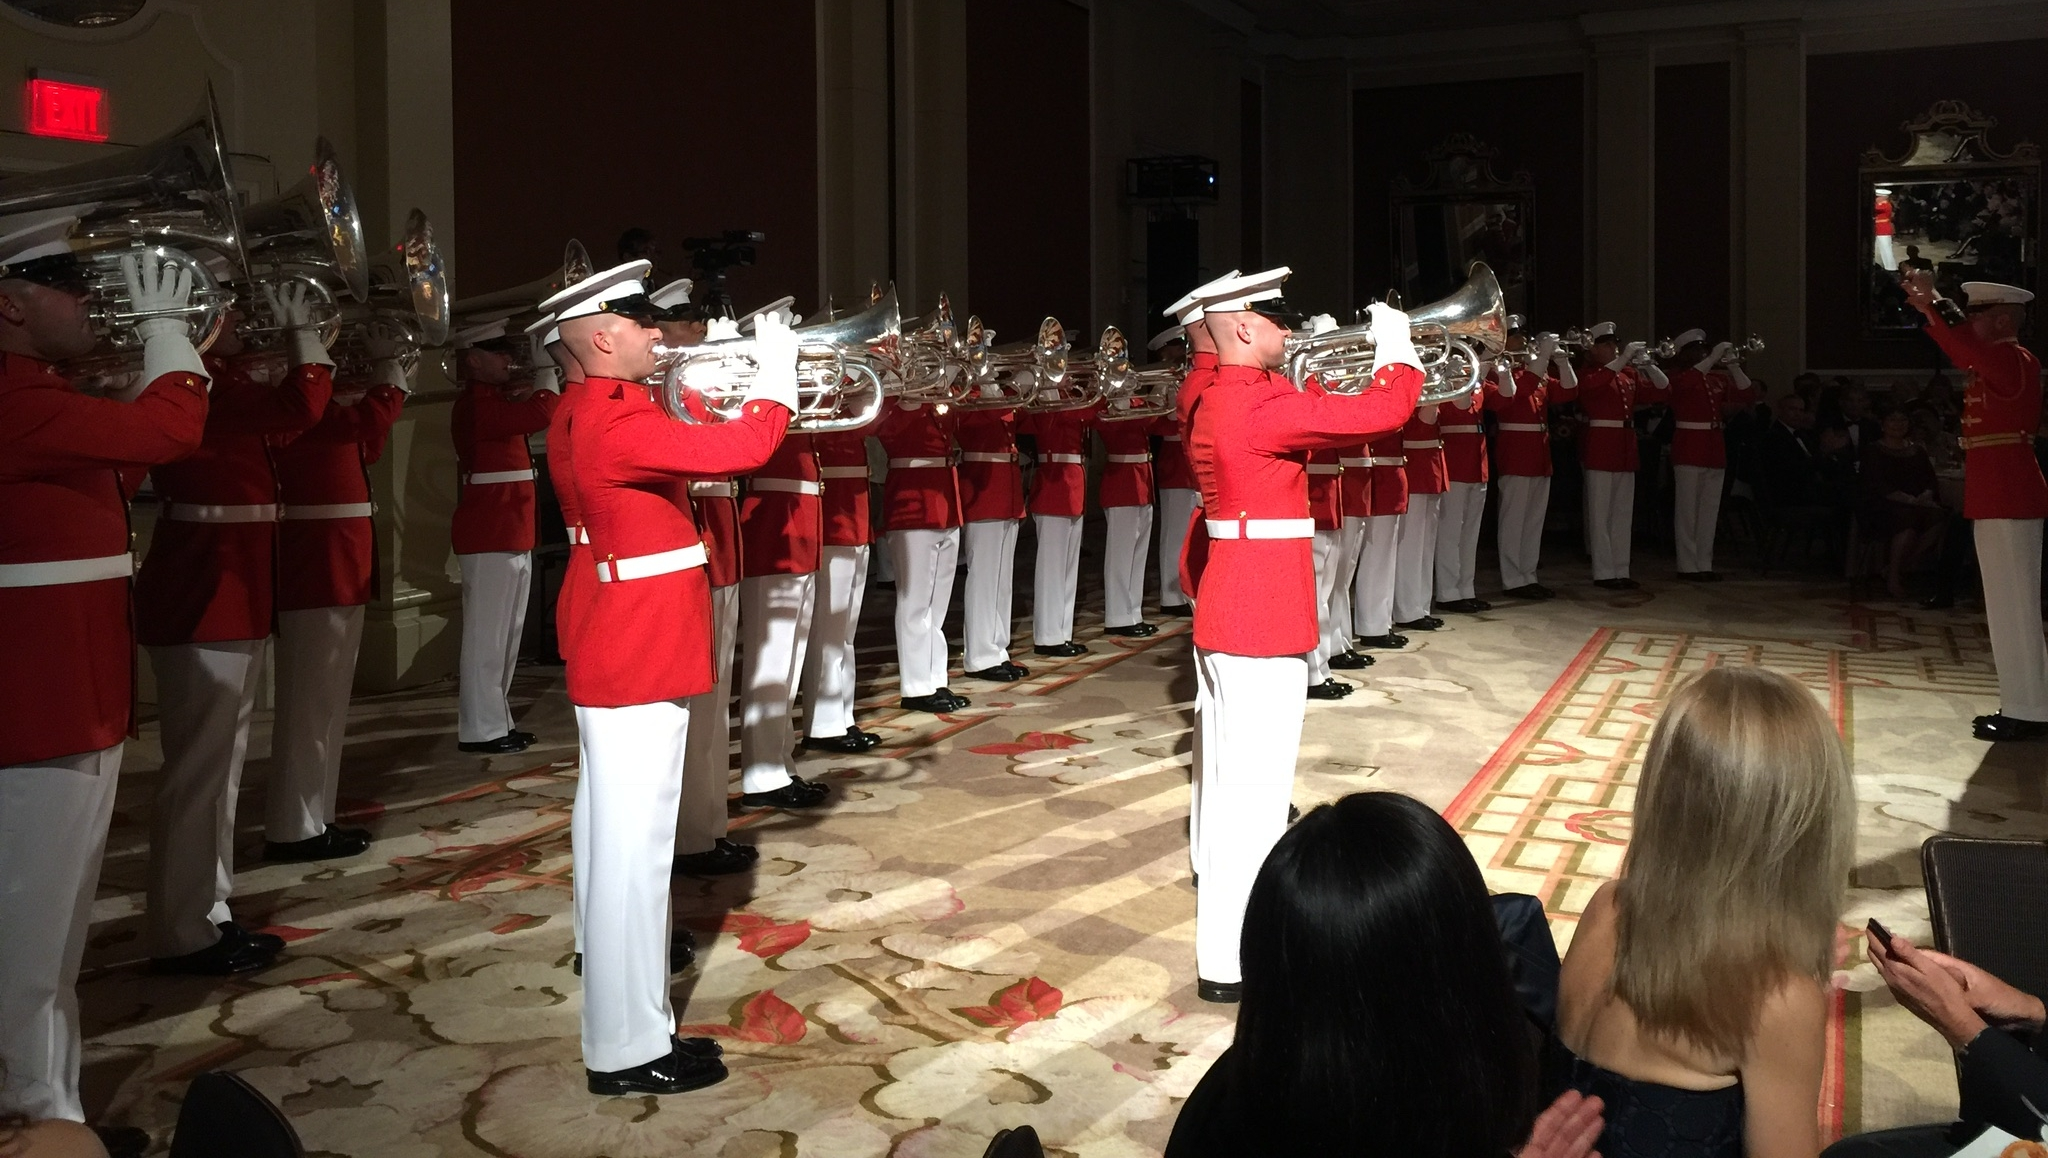 """The US Marine Corps Drum and Bugle Corps, """"The President's Own"""" performs Saturday night at the Marine Corps Scholarship Foundation Gala Event."""